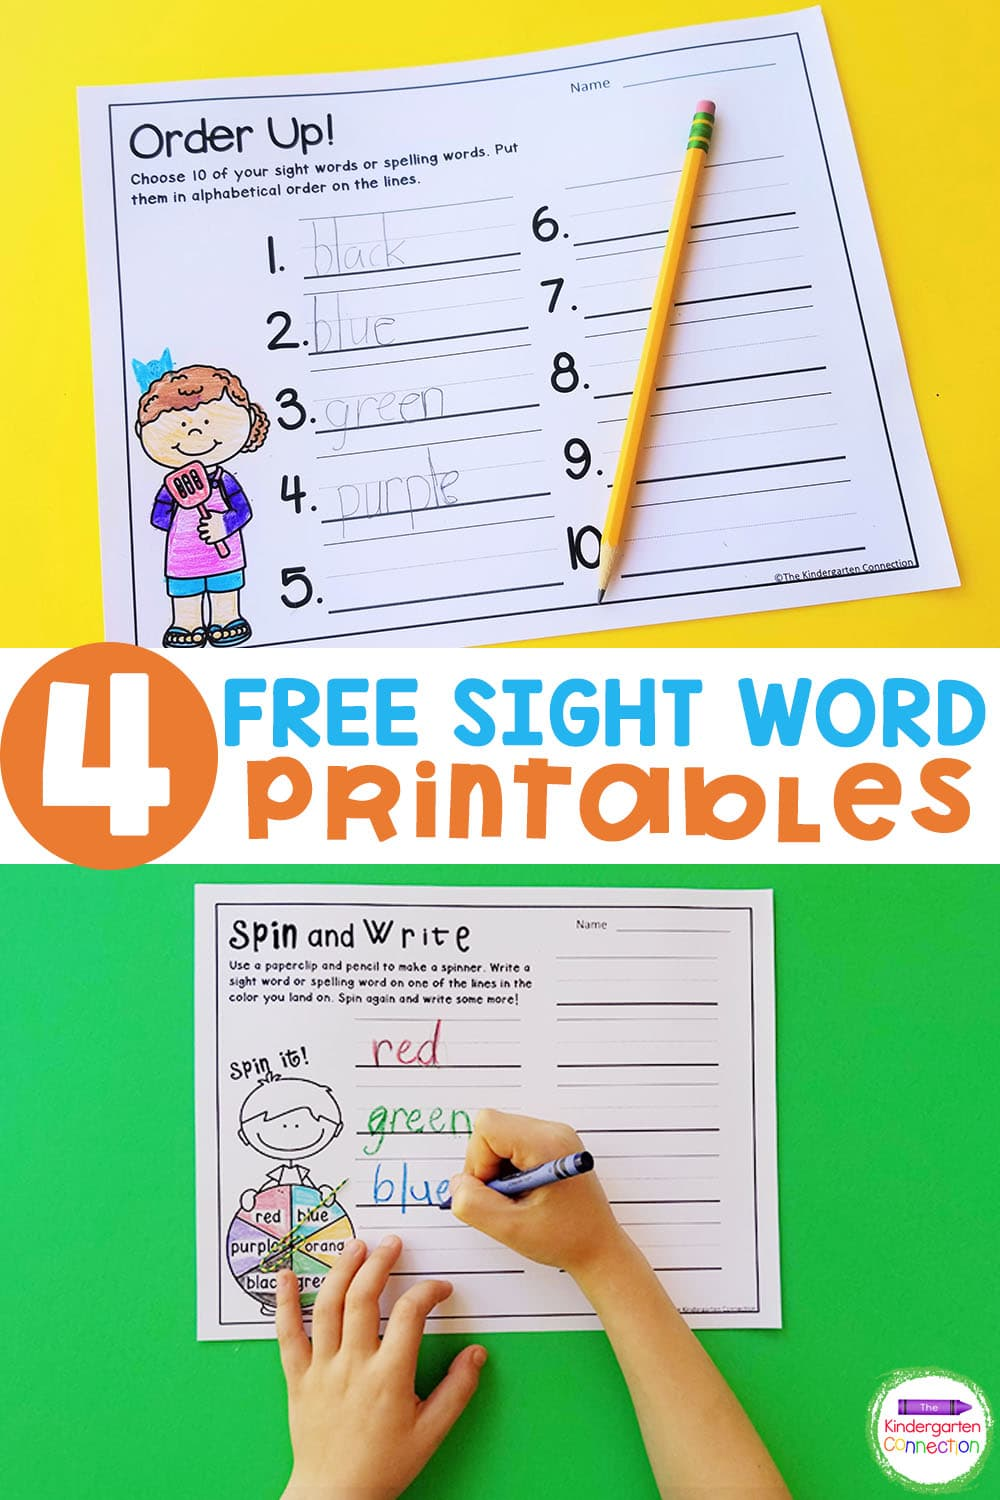 These Free Sight Word Printable Games are a fun way to practice reading in a hands-on and engaging way.